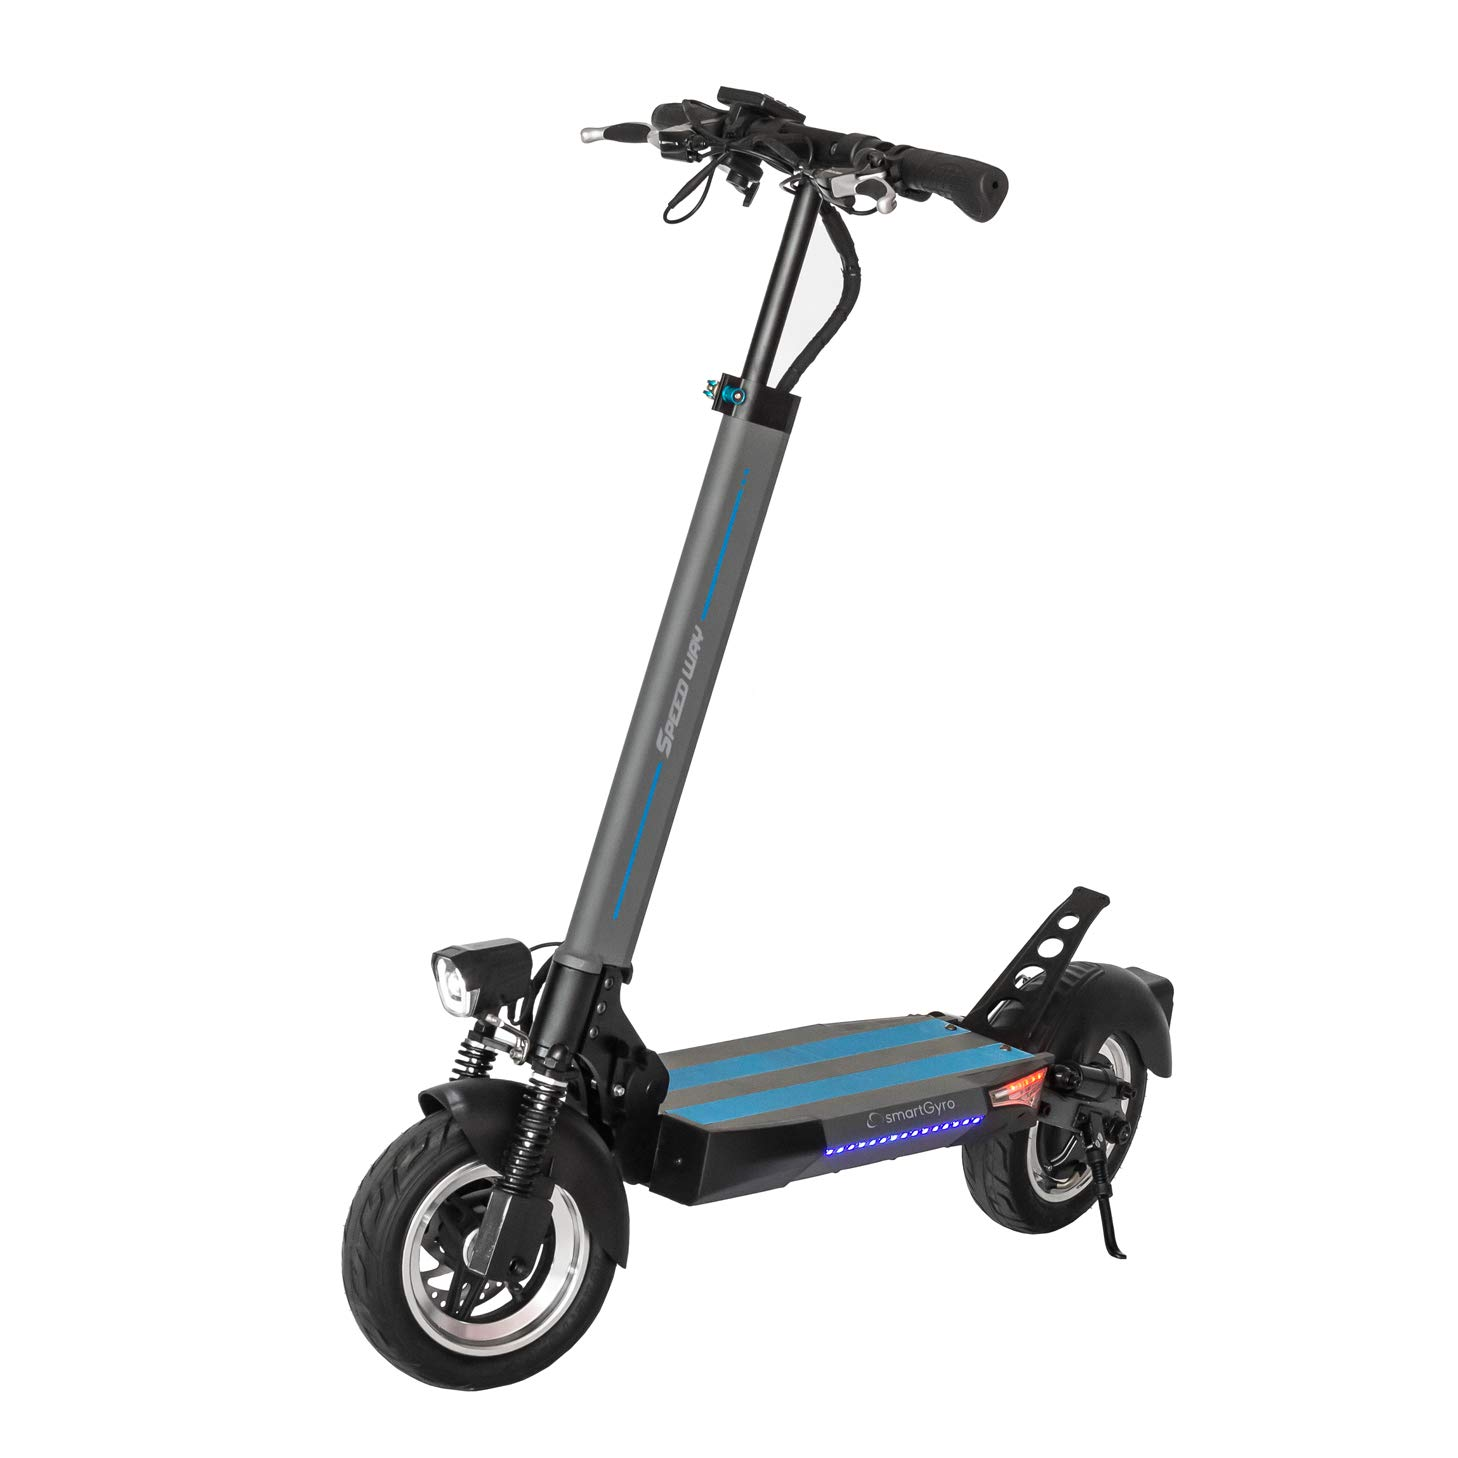 SmartGyro Xtreme Speed Way - Patinete Eléctrico de 600 W con ...